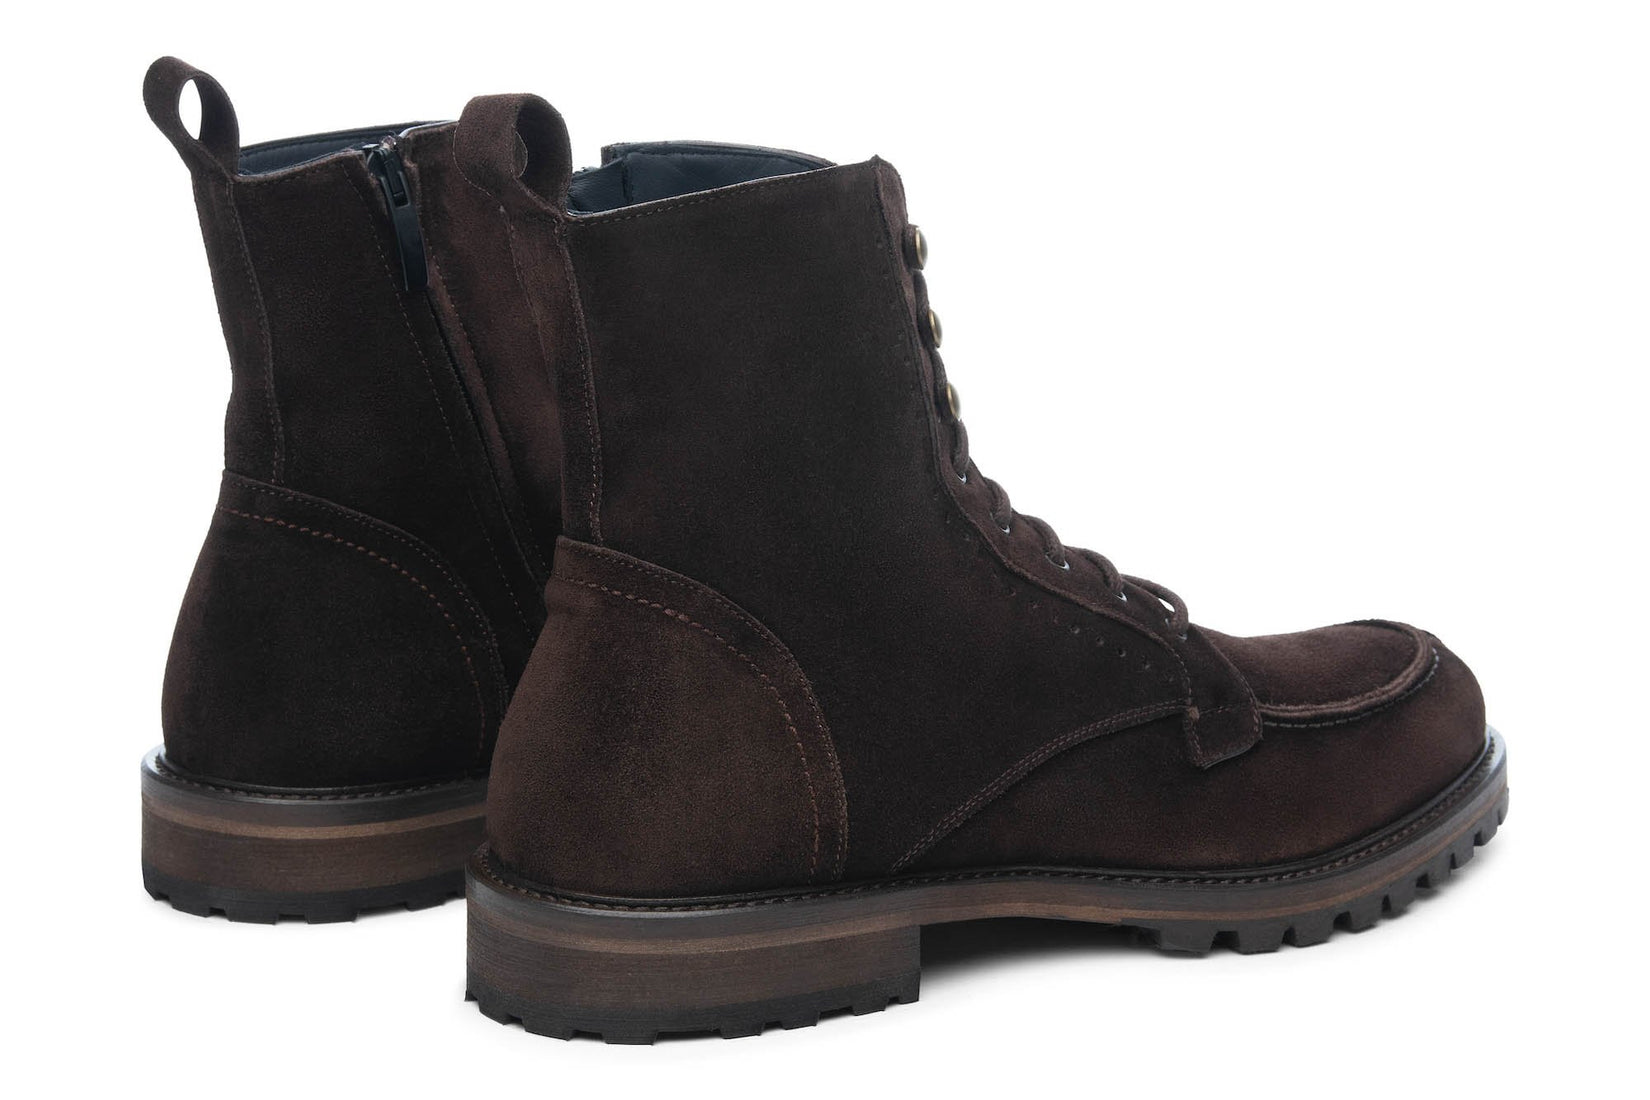 Tuesday Split-Toe Boot in Espresso